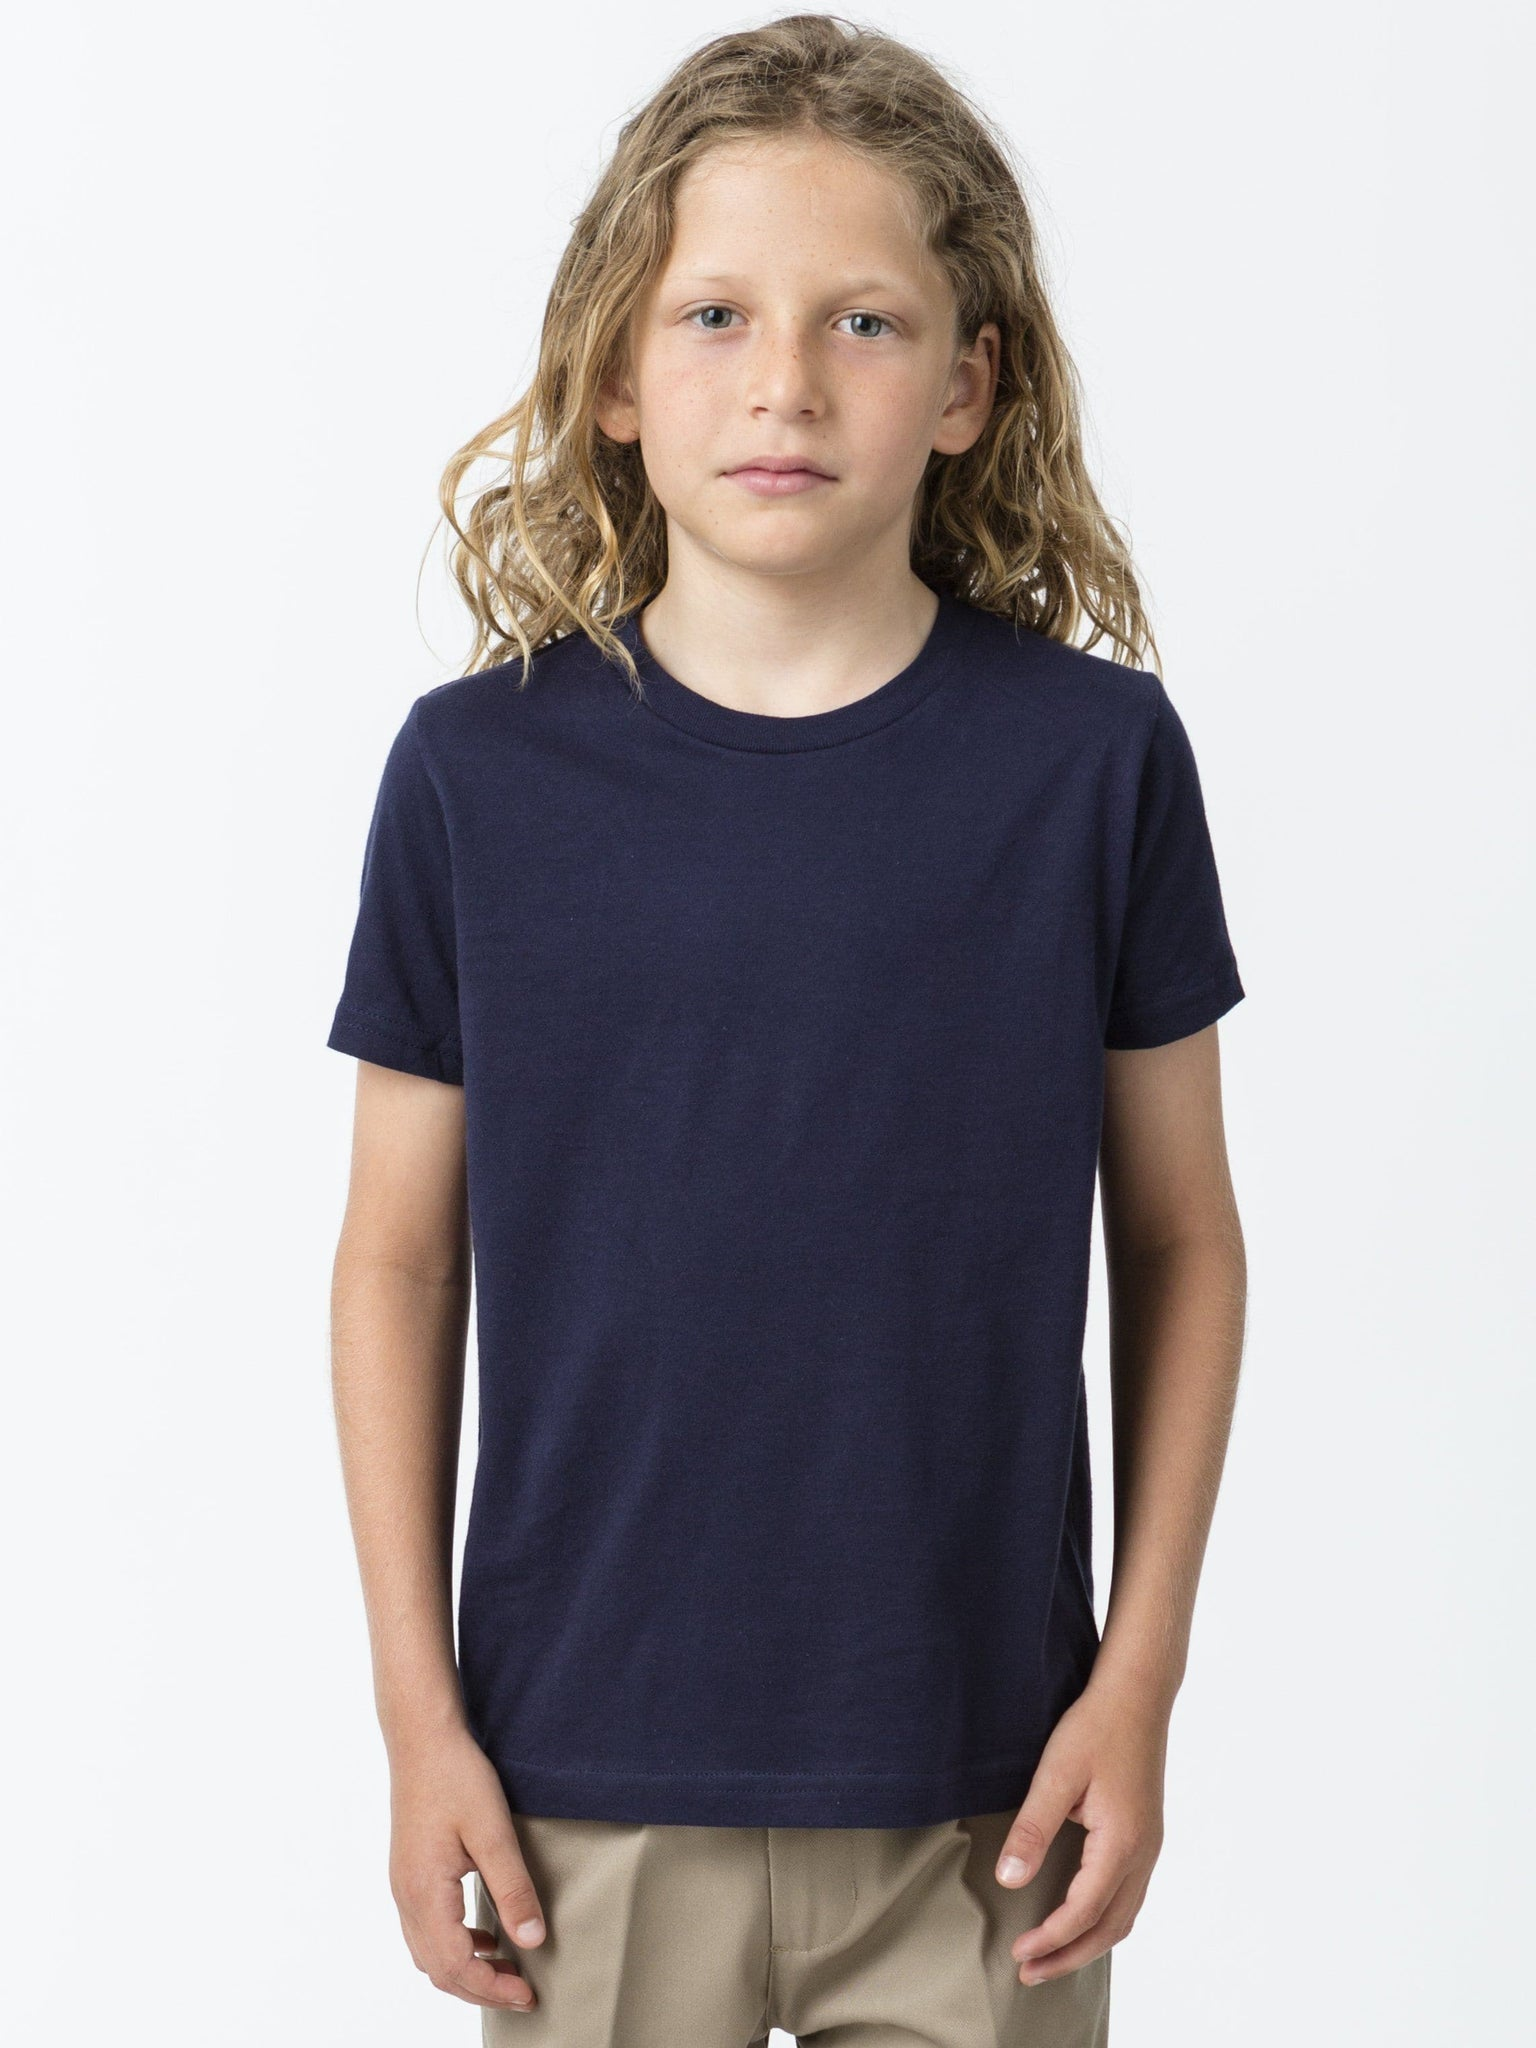 22001 - Youth Short Sleeve Fine Jersey Tee